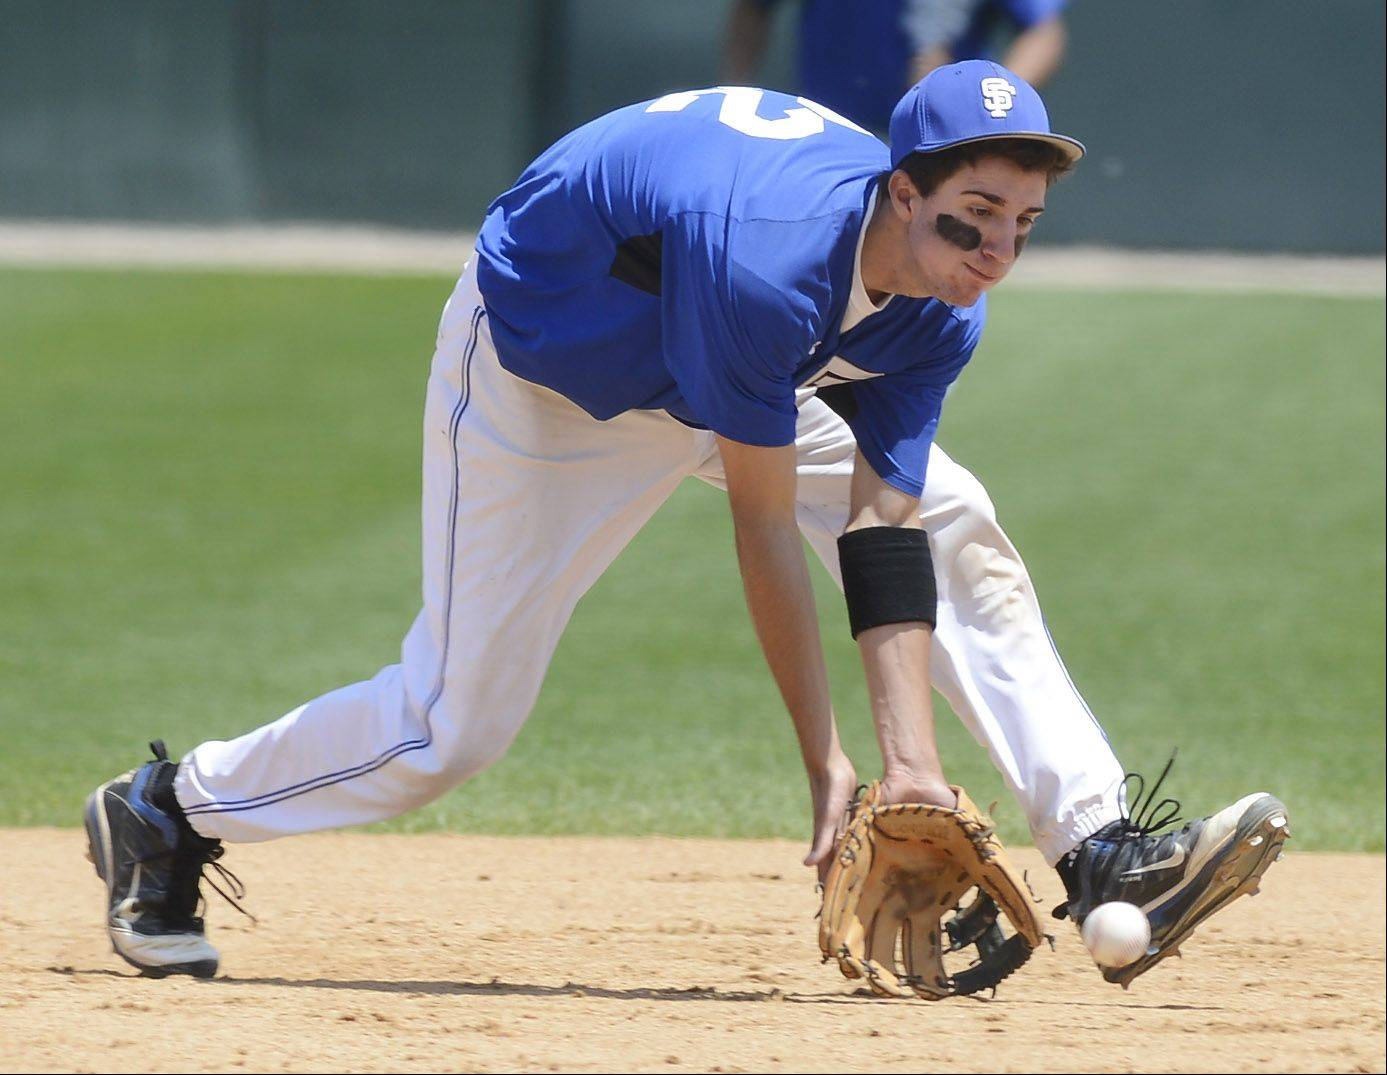 St. Francis shortstop Tim Zettinger fields a groundball during the Class 3A state baseball championship game against Joliet Catholic at Silver Cross Field in Joliet Saturday.